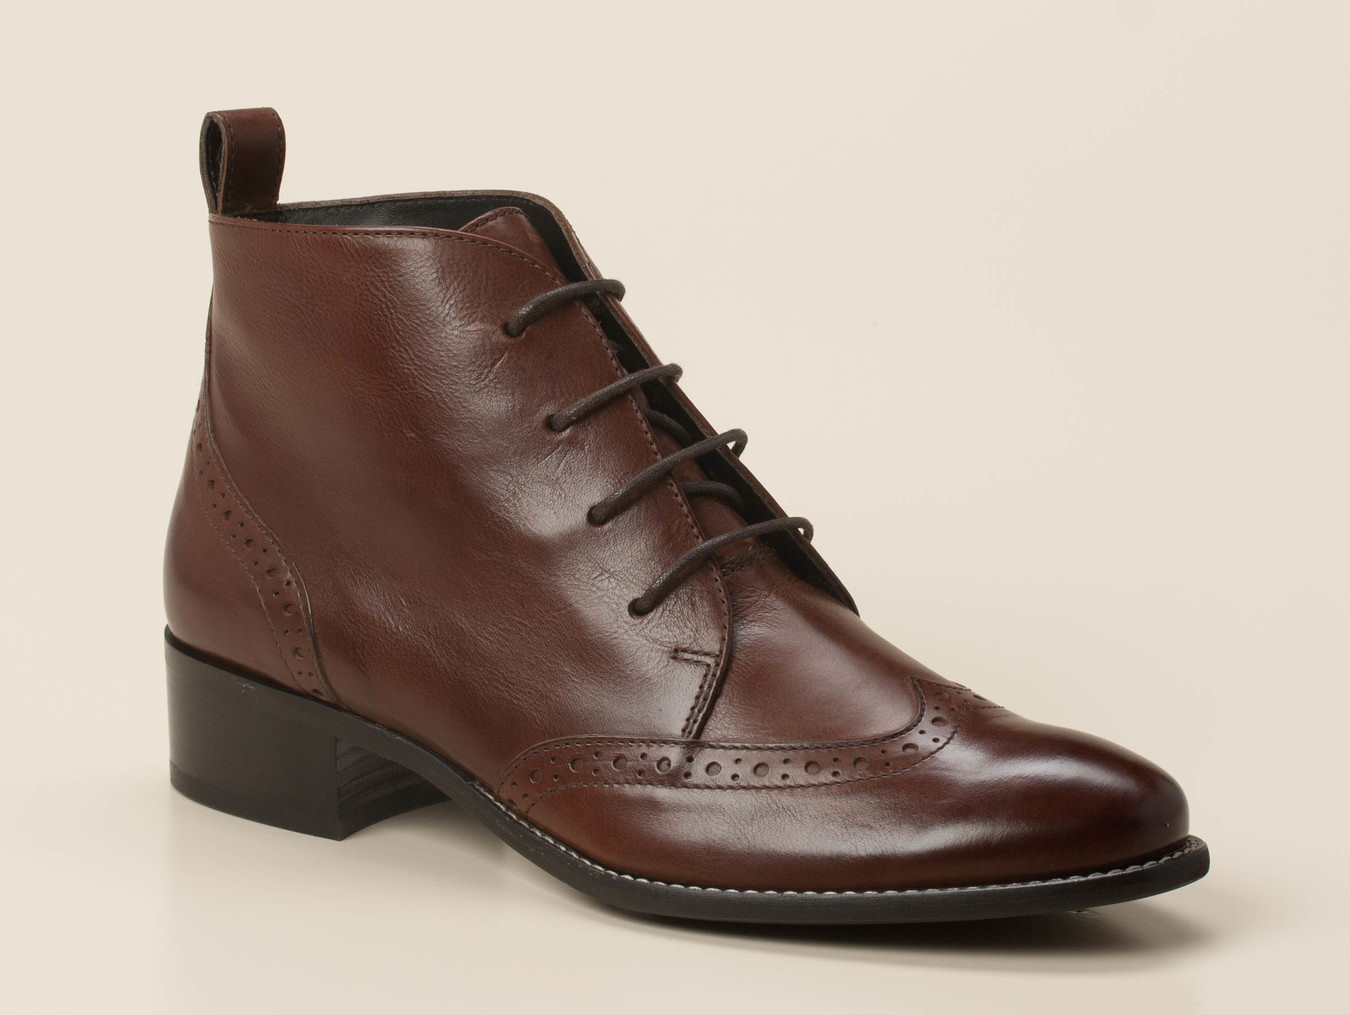 797c96554b86ff Paul Green Damen Stiefelette in cognac kaufen